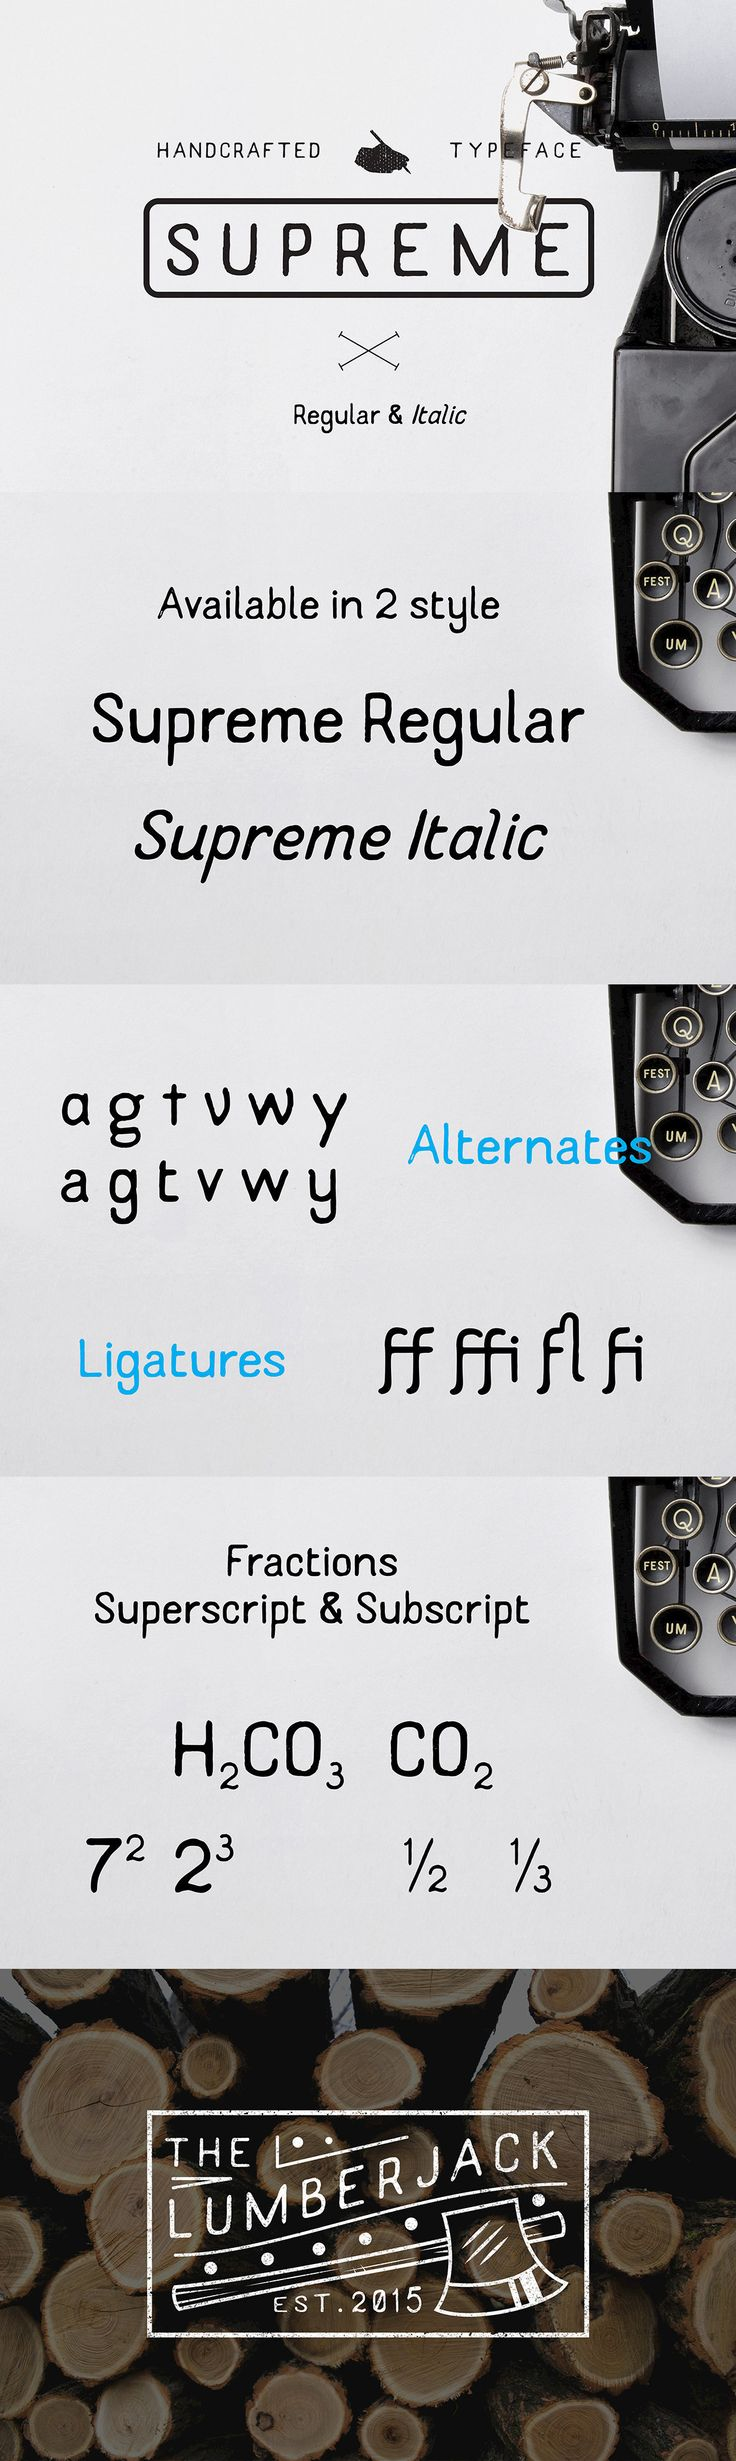 Supreme Handcrafted Typeface Typeface, Handcraft